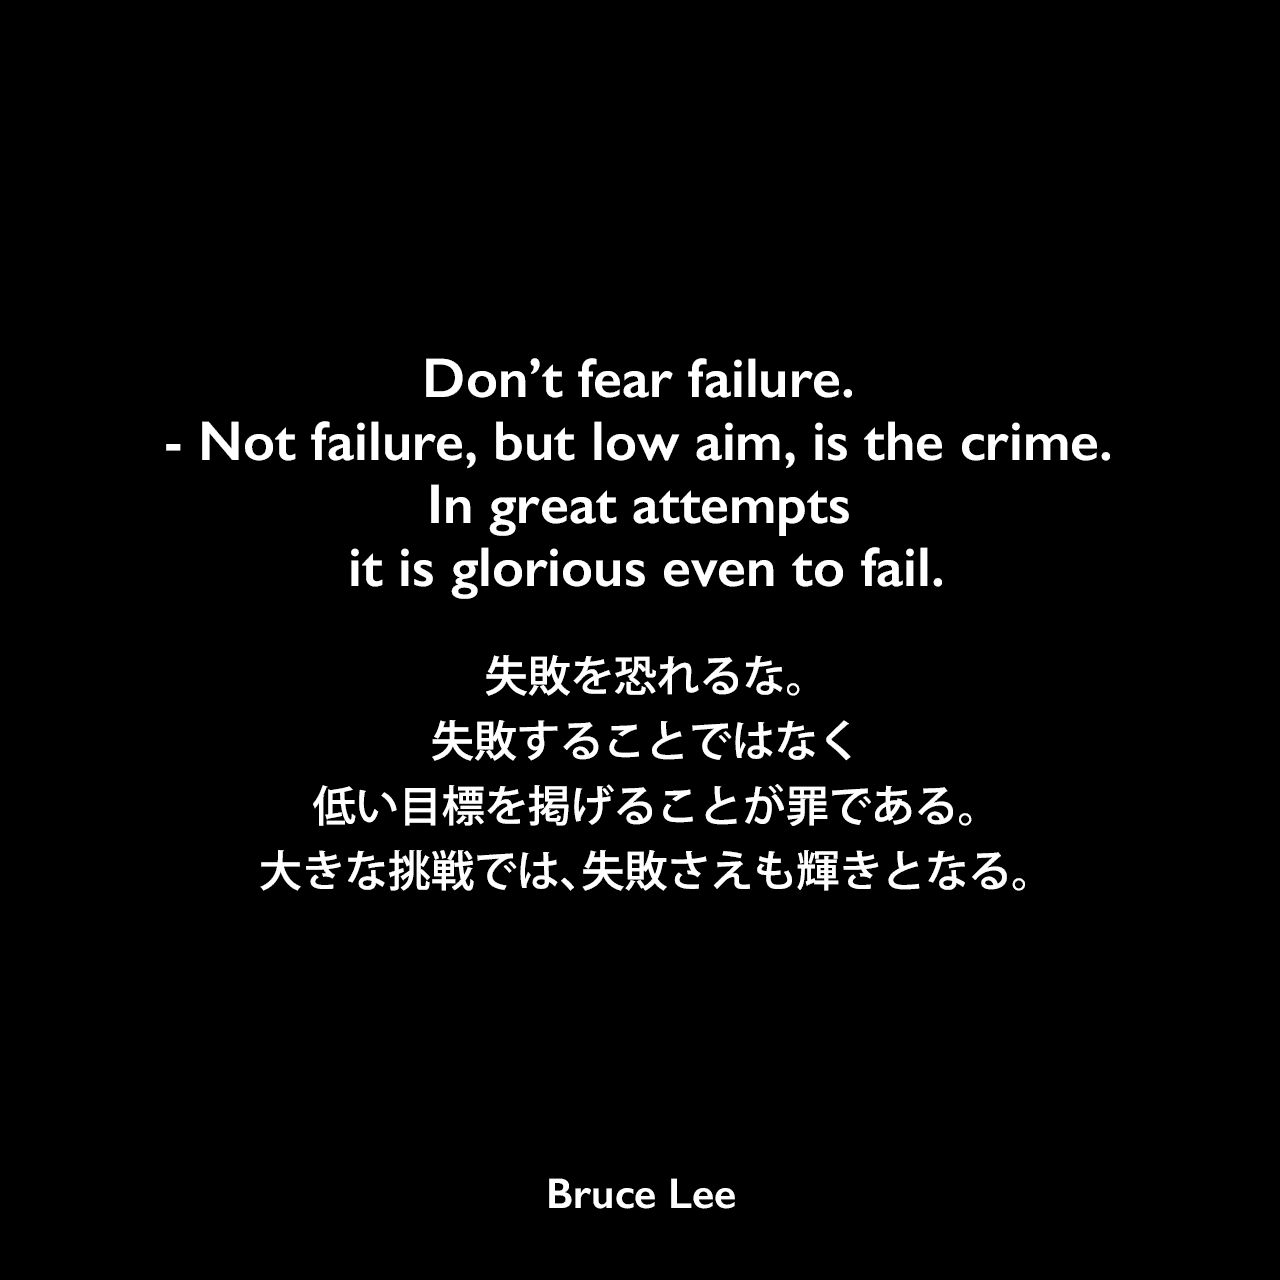 Don't fear failure. — Not failure, but low aim, is the crime. In great attempts it is glorious even to fail.失敗を恐れるな。失敗することではなく、低い目標を掲げることが罪である。大きな挑戦では、失敗さえも輝きとなる。- ブルース・リーの本「ブルース・リーが語るストライキング・ソーツ」より